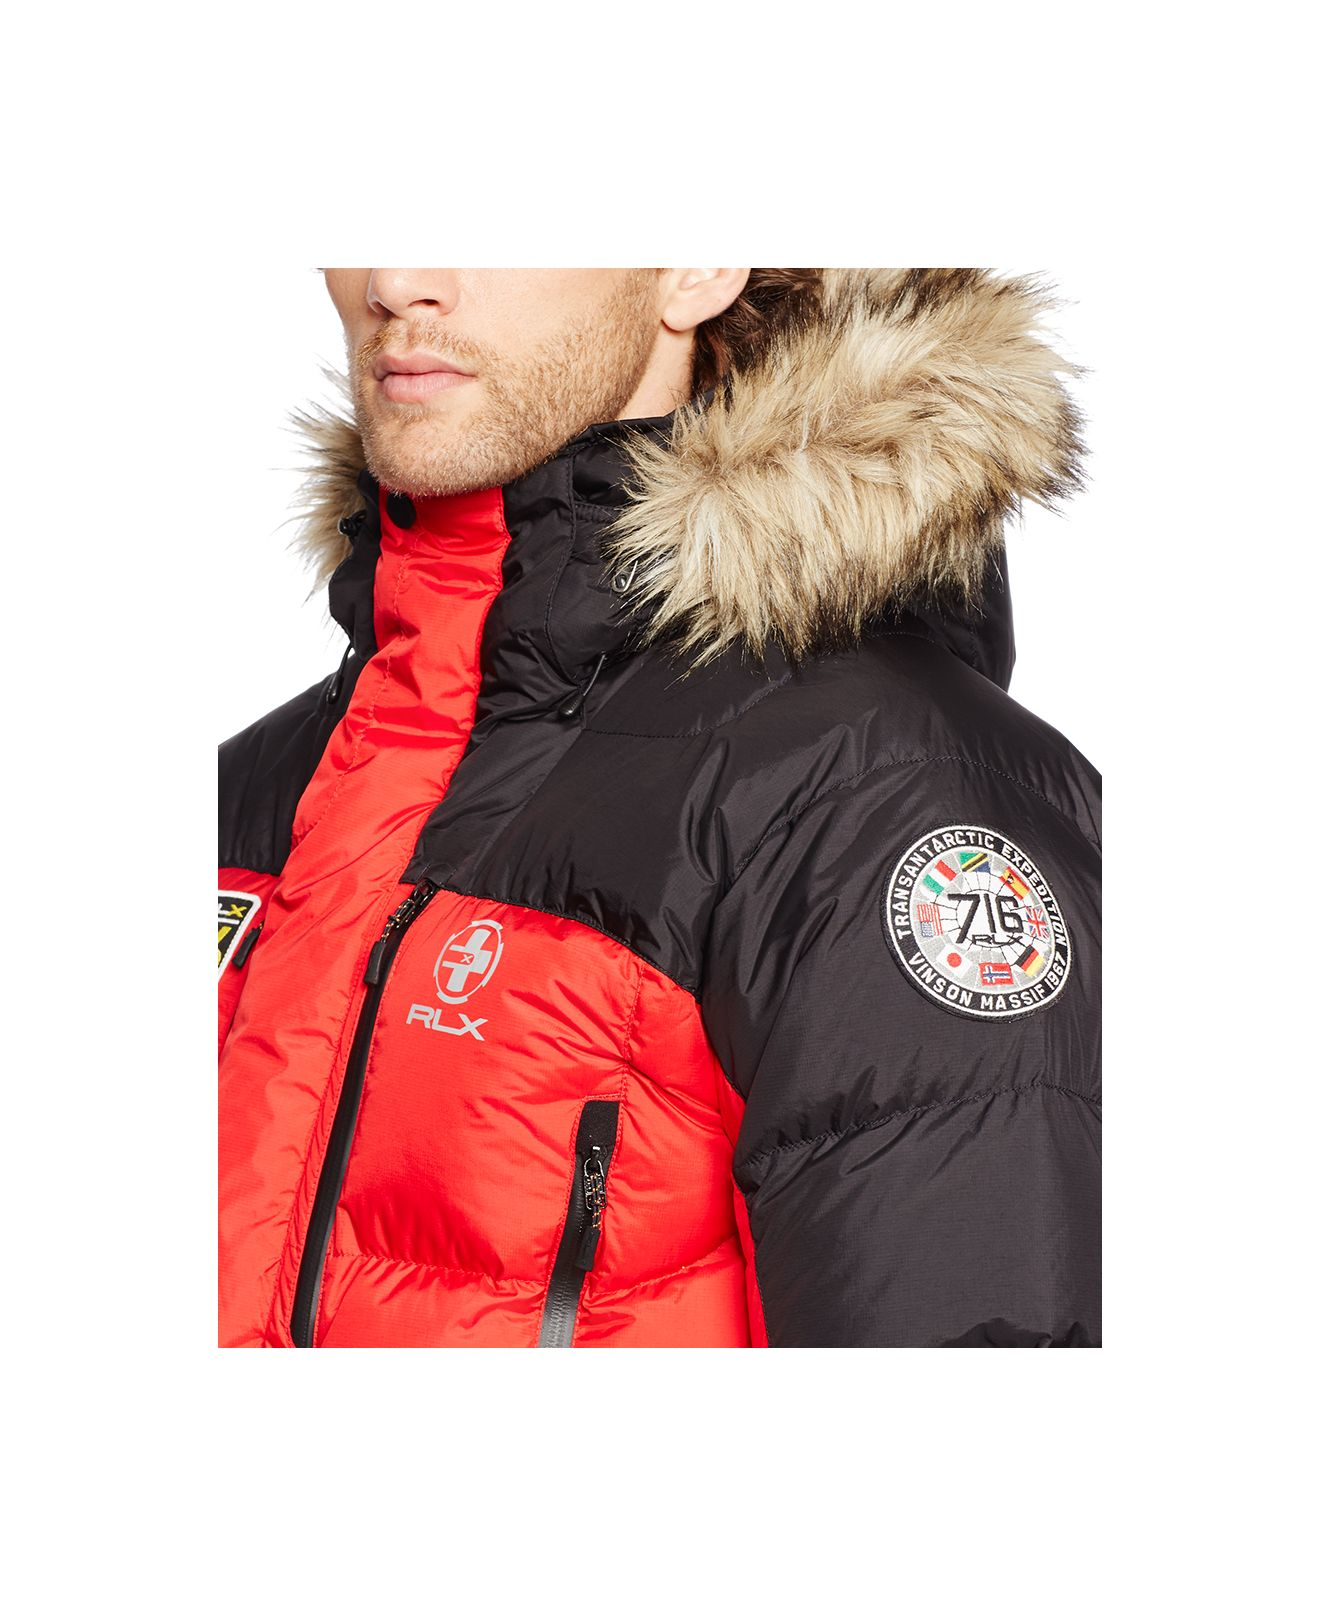 marein polo ralph lauren rlx expedition down jacket. Black Bedroom Furniture Sets. Home Design Ideas